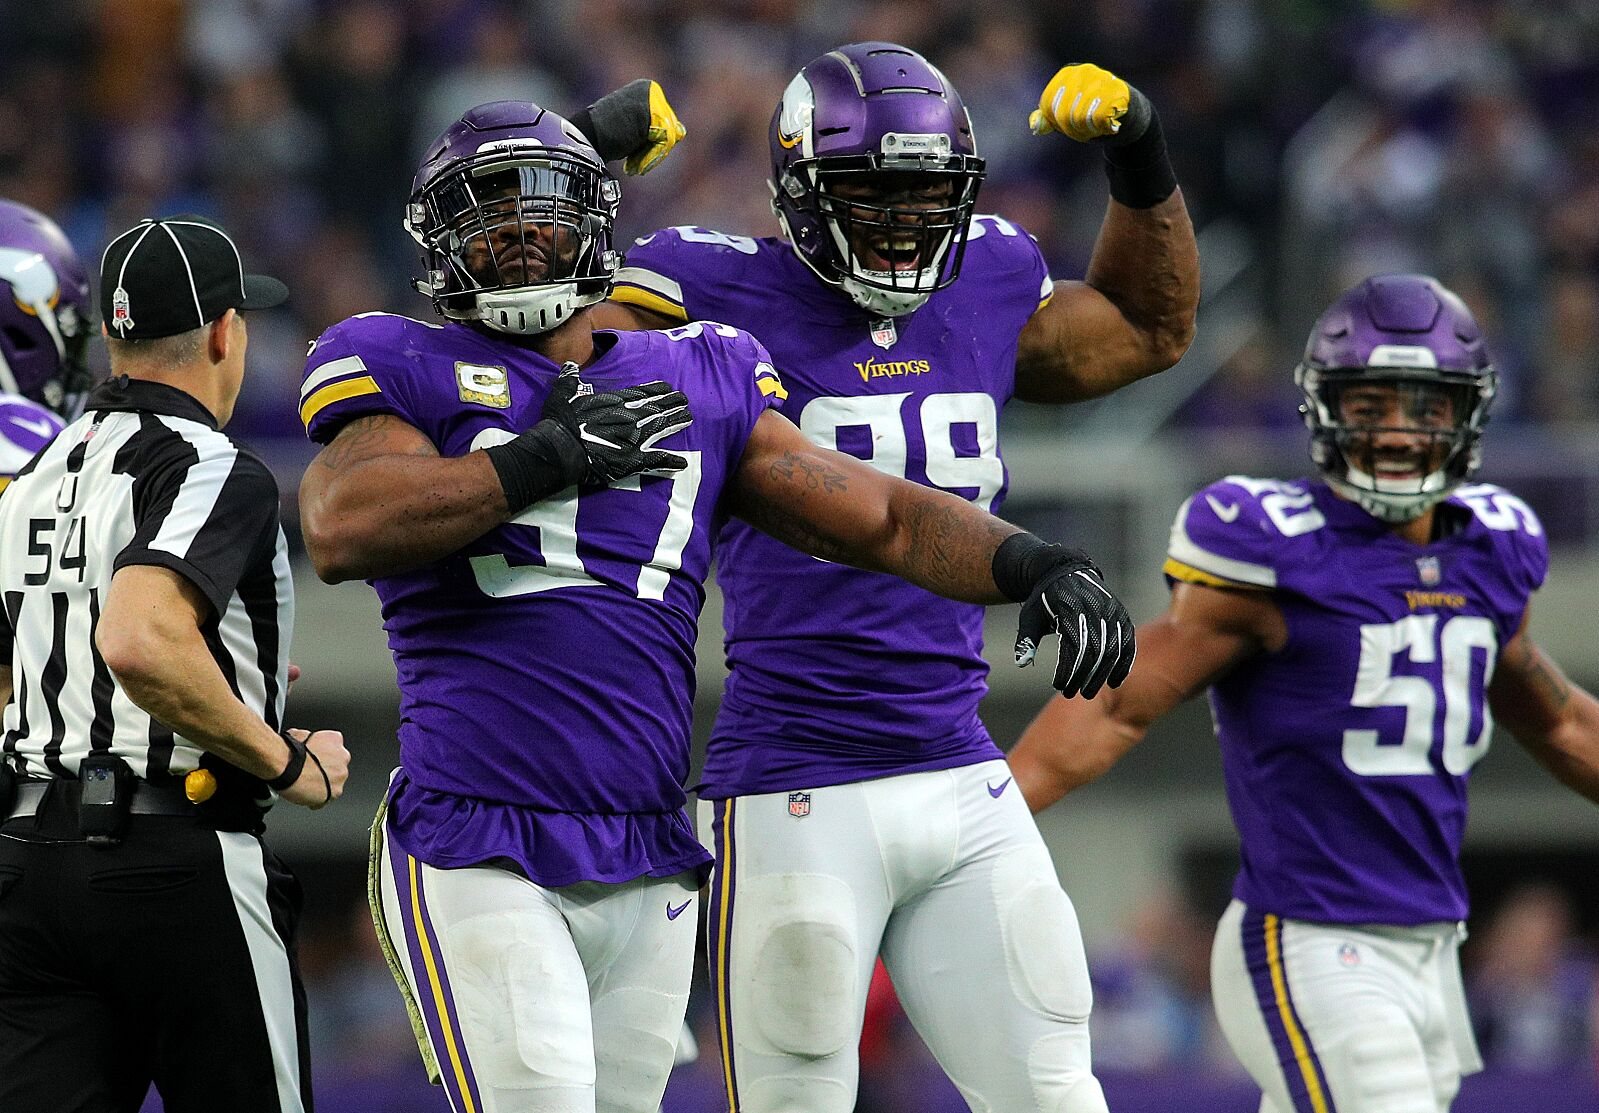 40b017a1a0c The Minnesota Vikings will host the Miami Dolphins in Week 15 and here are  three reasons why the purple and gold will be victorious on Dec. 16, 2018.